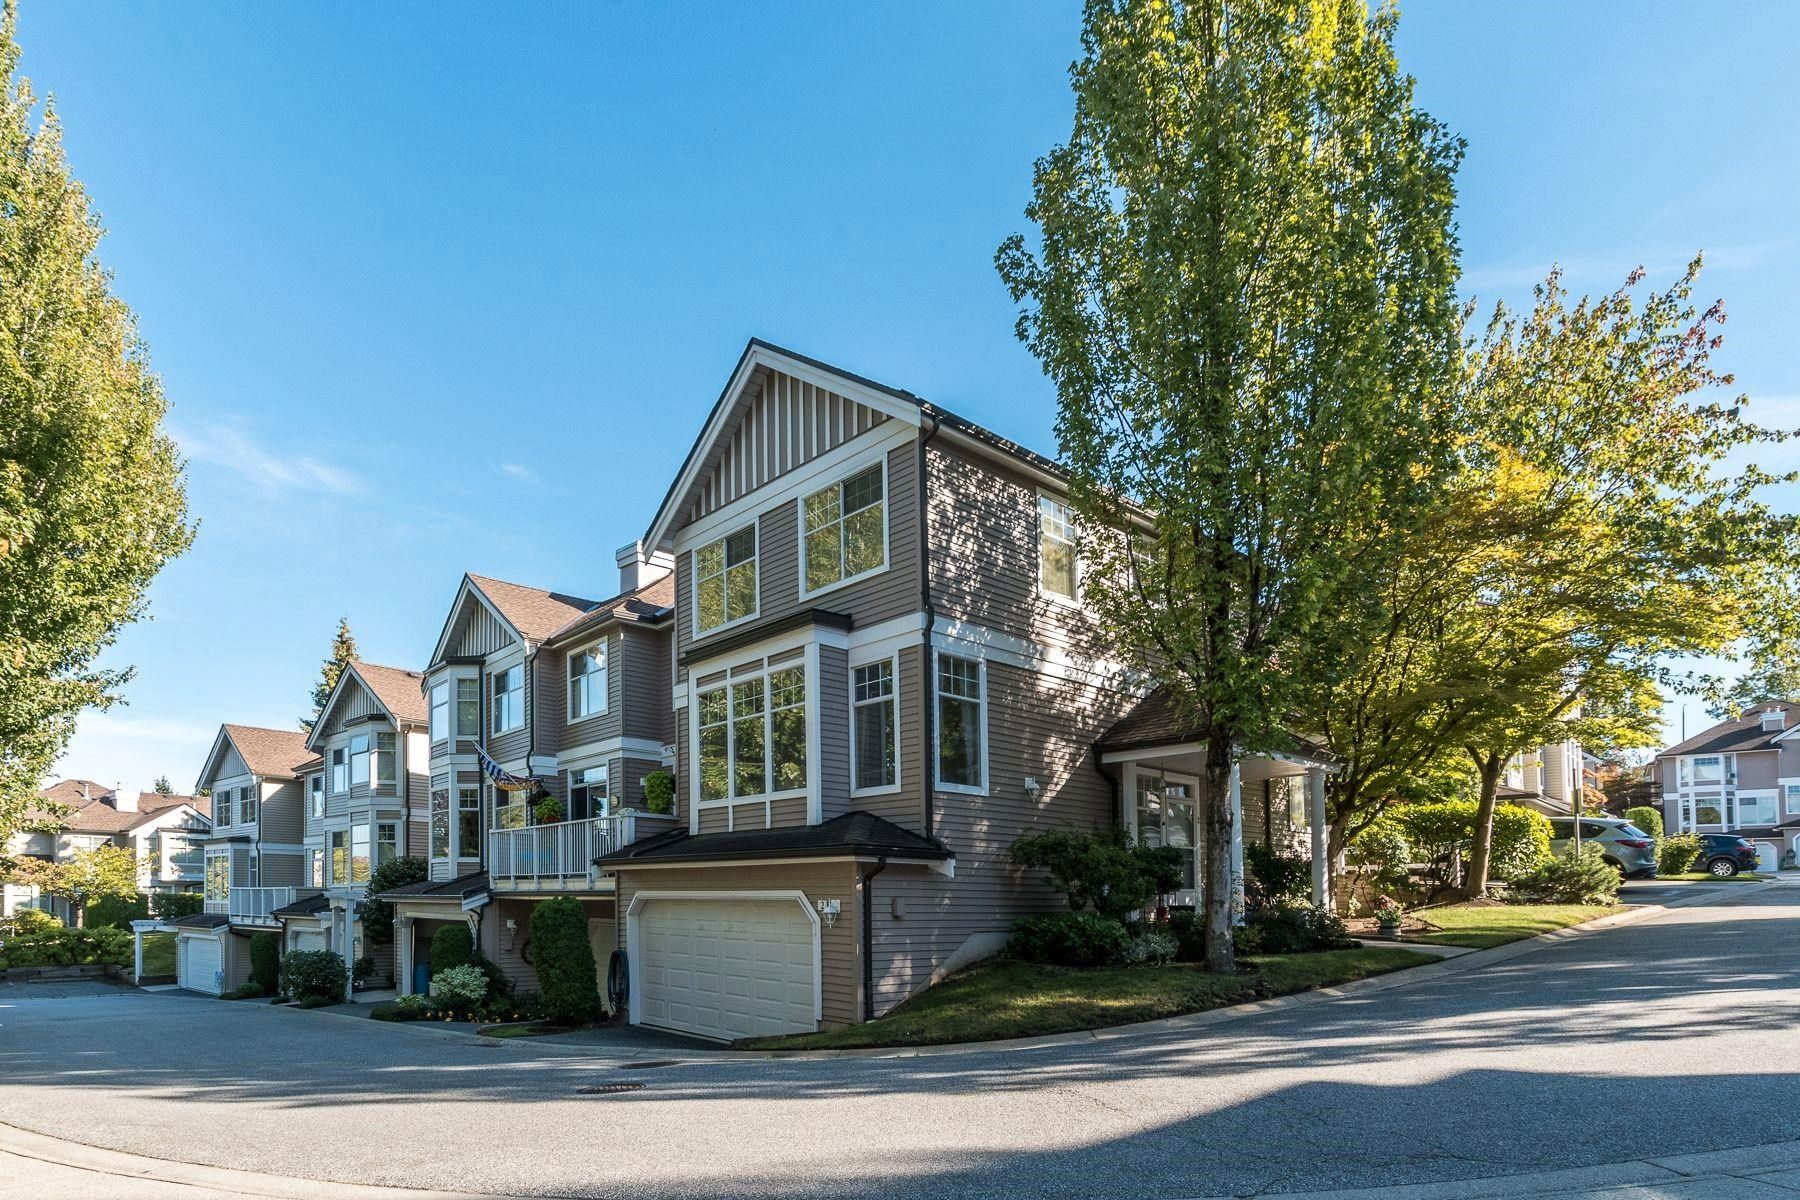 """Main Photo: 2 5950 OAKDALE Road in Burnaby: Oaklands Townhouse for sale in """"Heathercrest"""" (Burnaby South)  : MLS®# R2615796"""